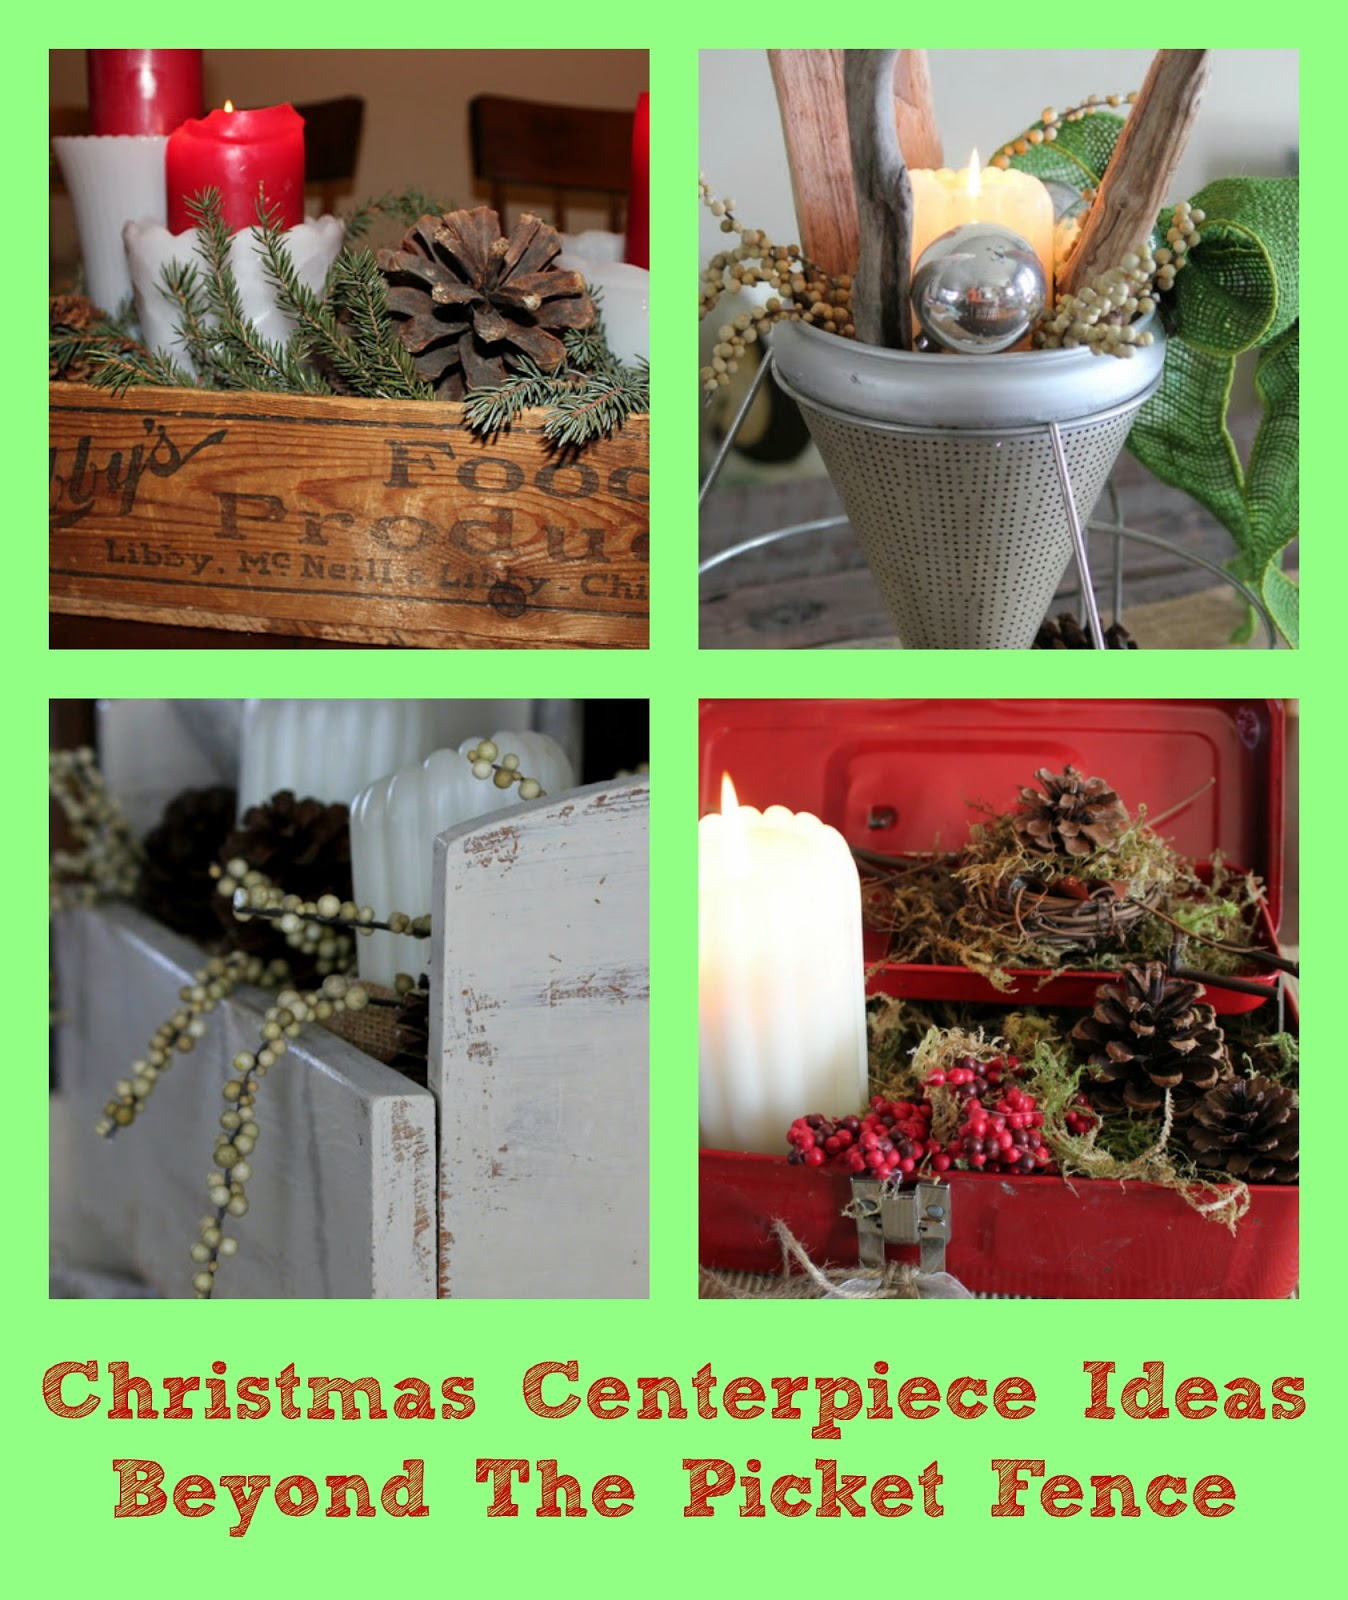 Christmas centerpiece ideas http://bec4-beyondthepicketfence.blogspot.com/2014/10/the-center-of-attention.html